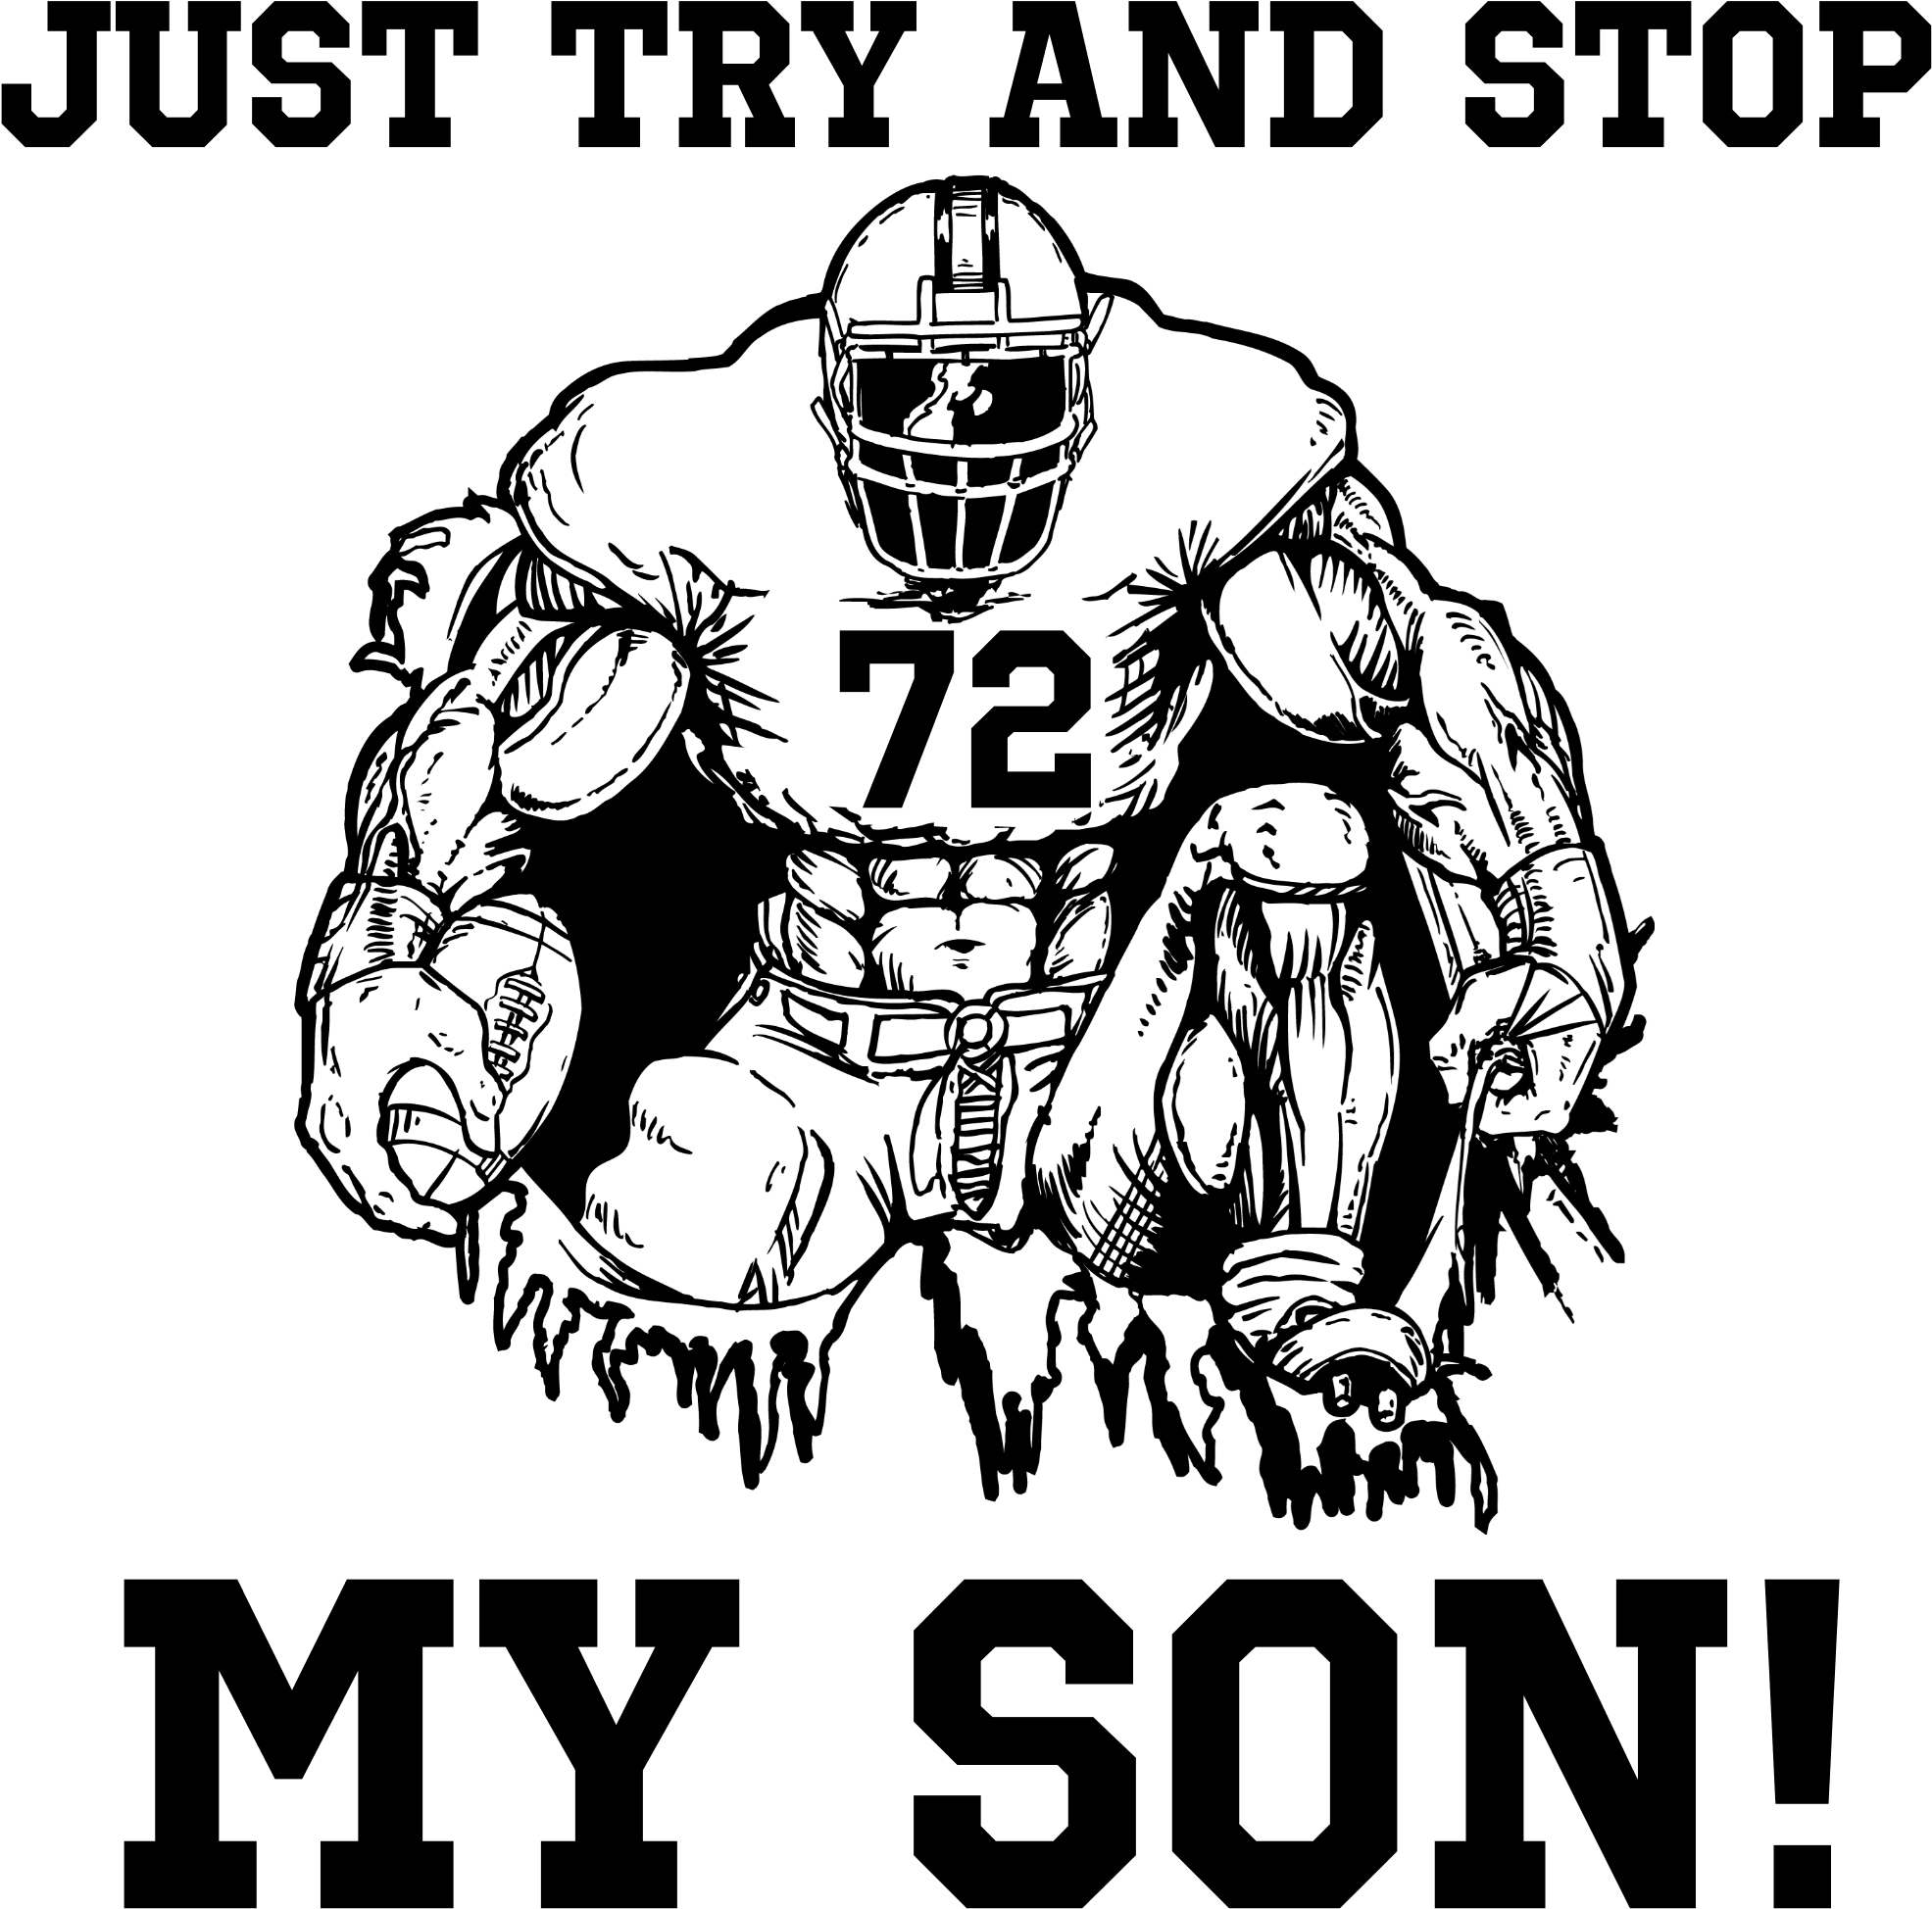 Free Football Tackle Silhouette Download Free Clip Art